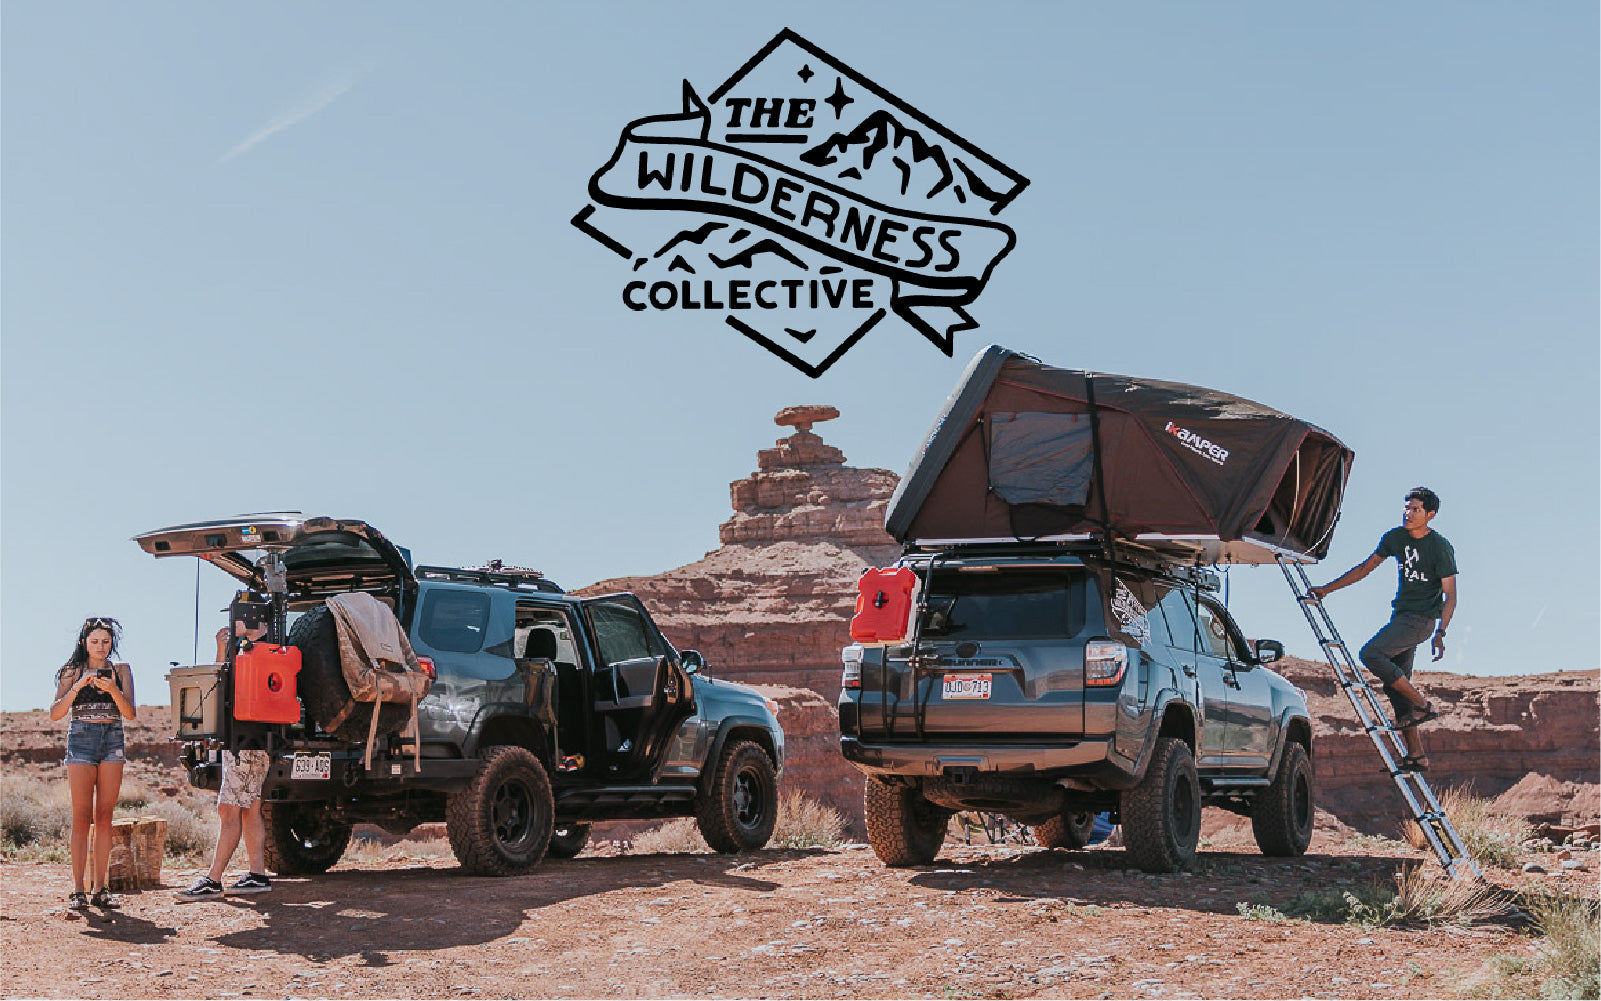 Arizona Road Trip with 'The Wilderness Collective'